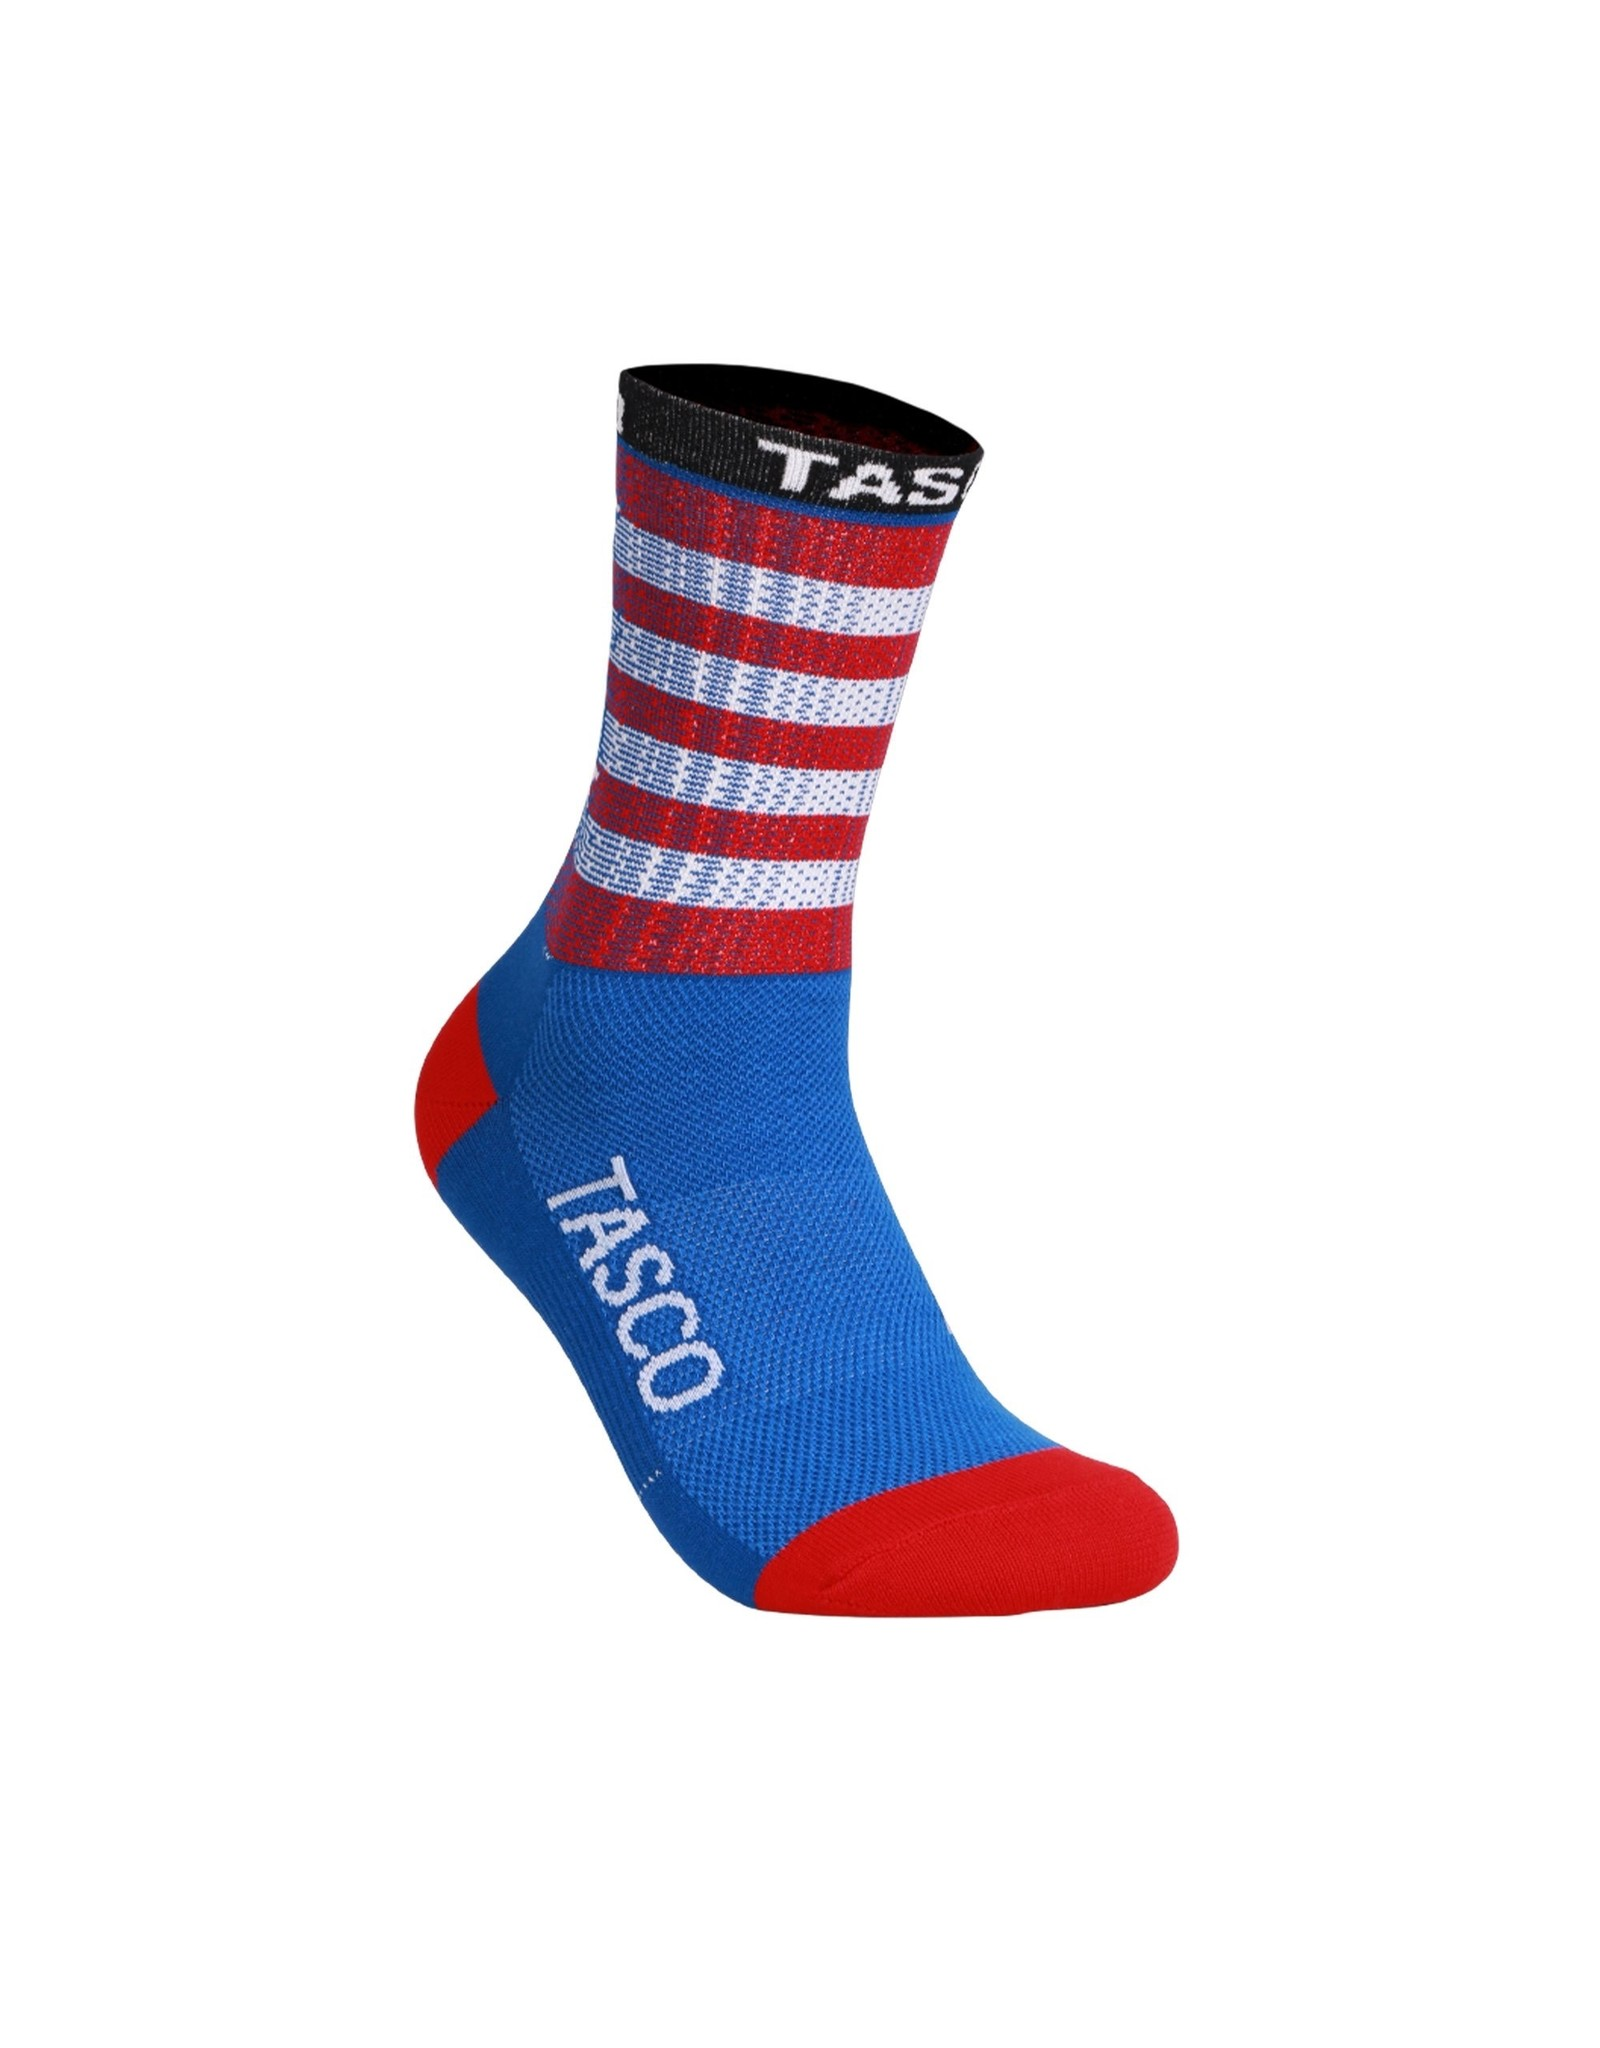 Tasco MTB Double Digits Socks (Indivisible Flag)